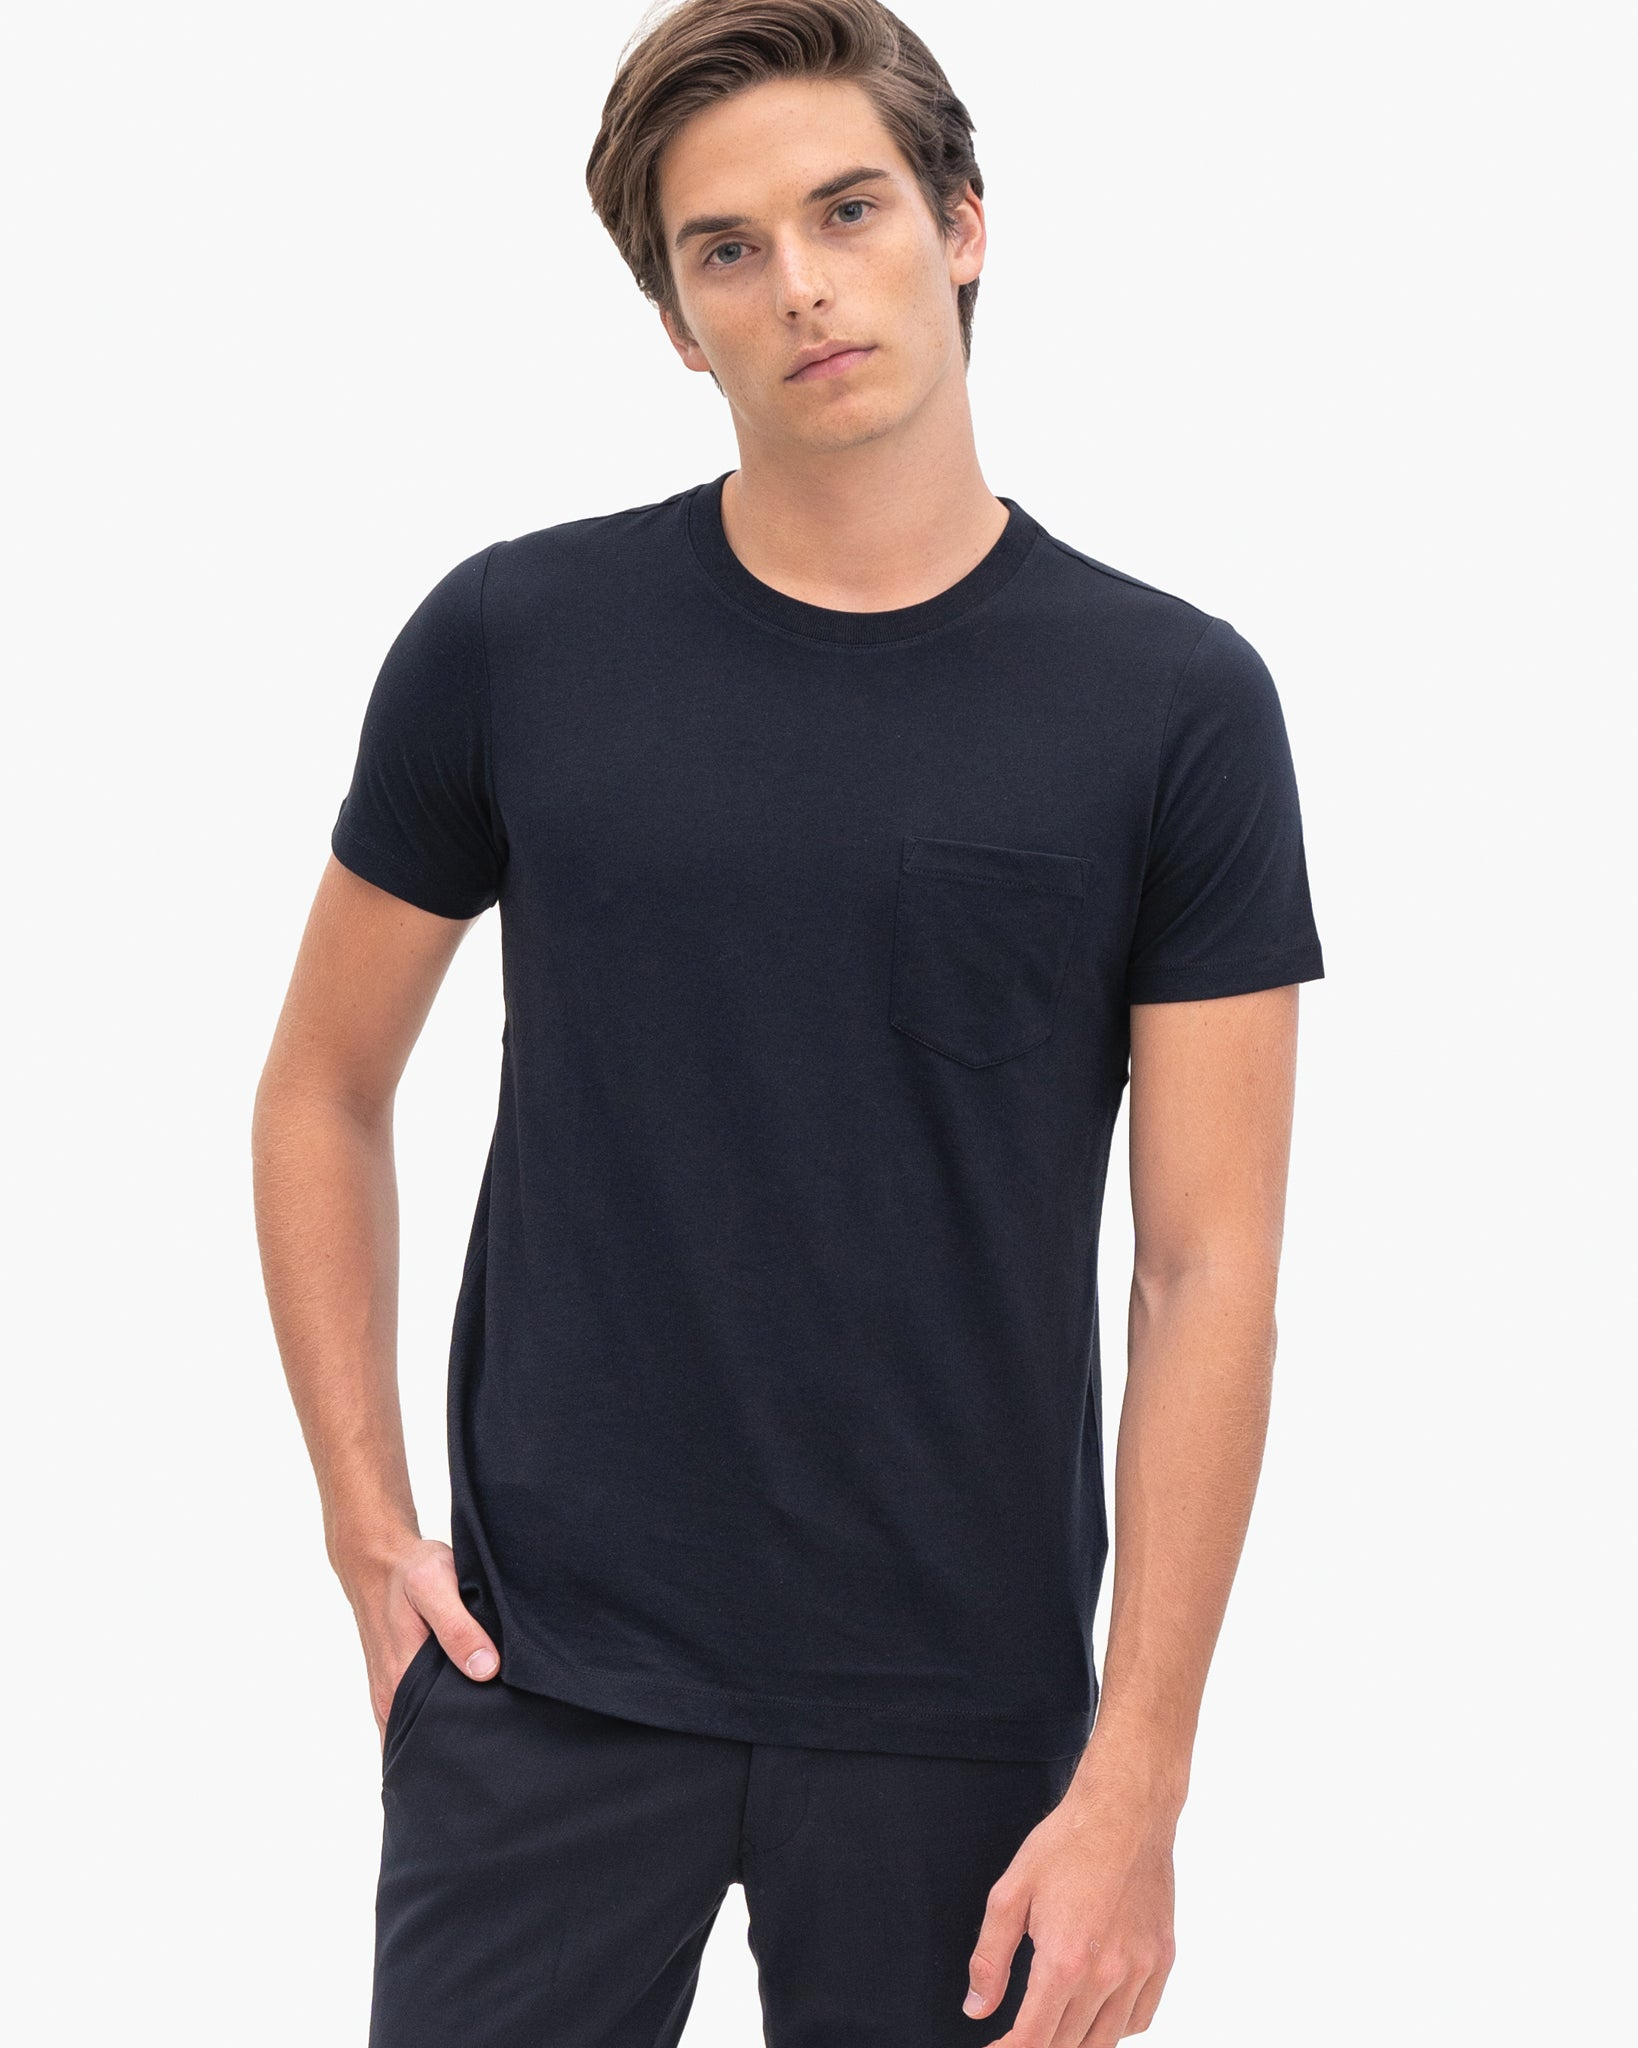 Men Organic Cotton Crew Neck with Pocket Black Featured